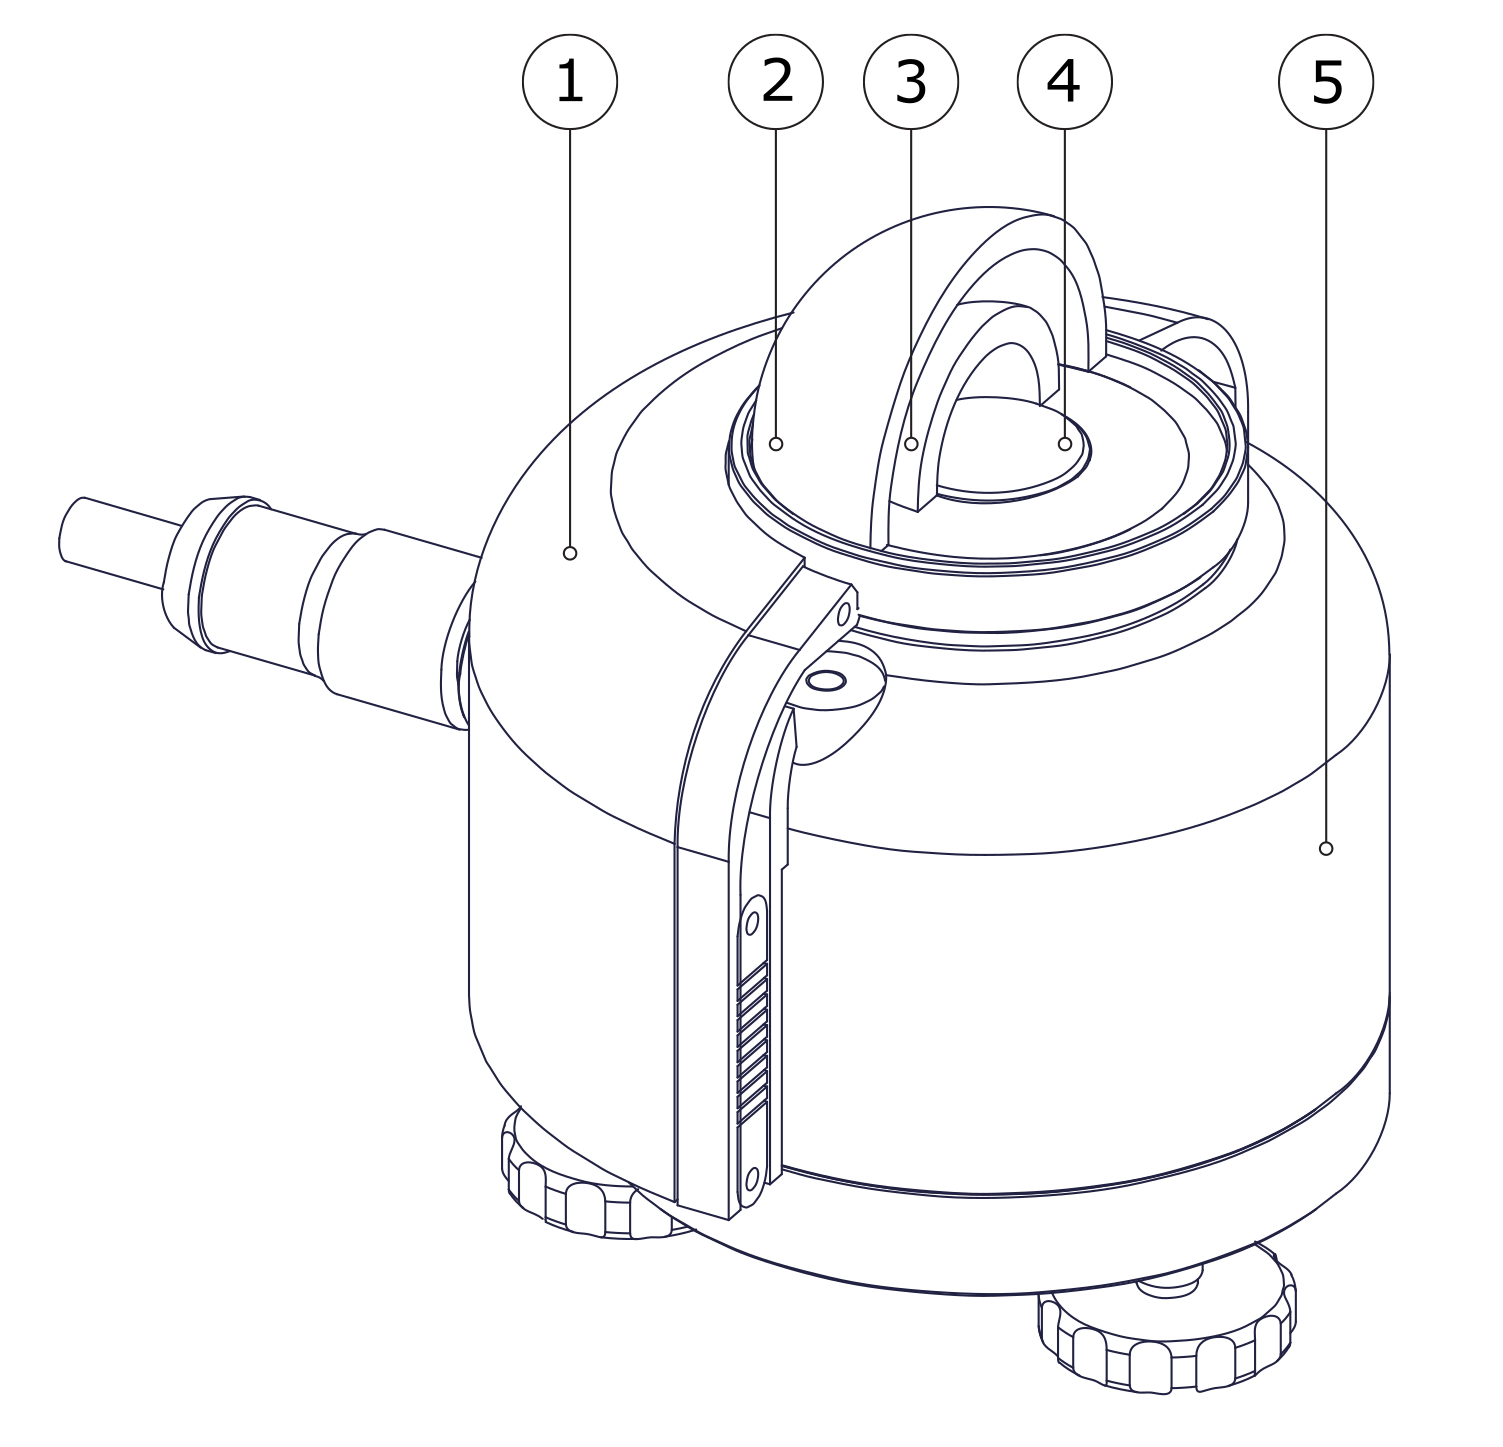 essential parts of a typical thermopile pyranometer: sunscreen (1), outer dome (2), inner dome (3), thermopile with sensor surface (4) and aluminium sensor body (5)